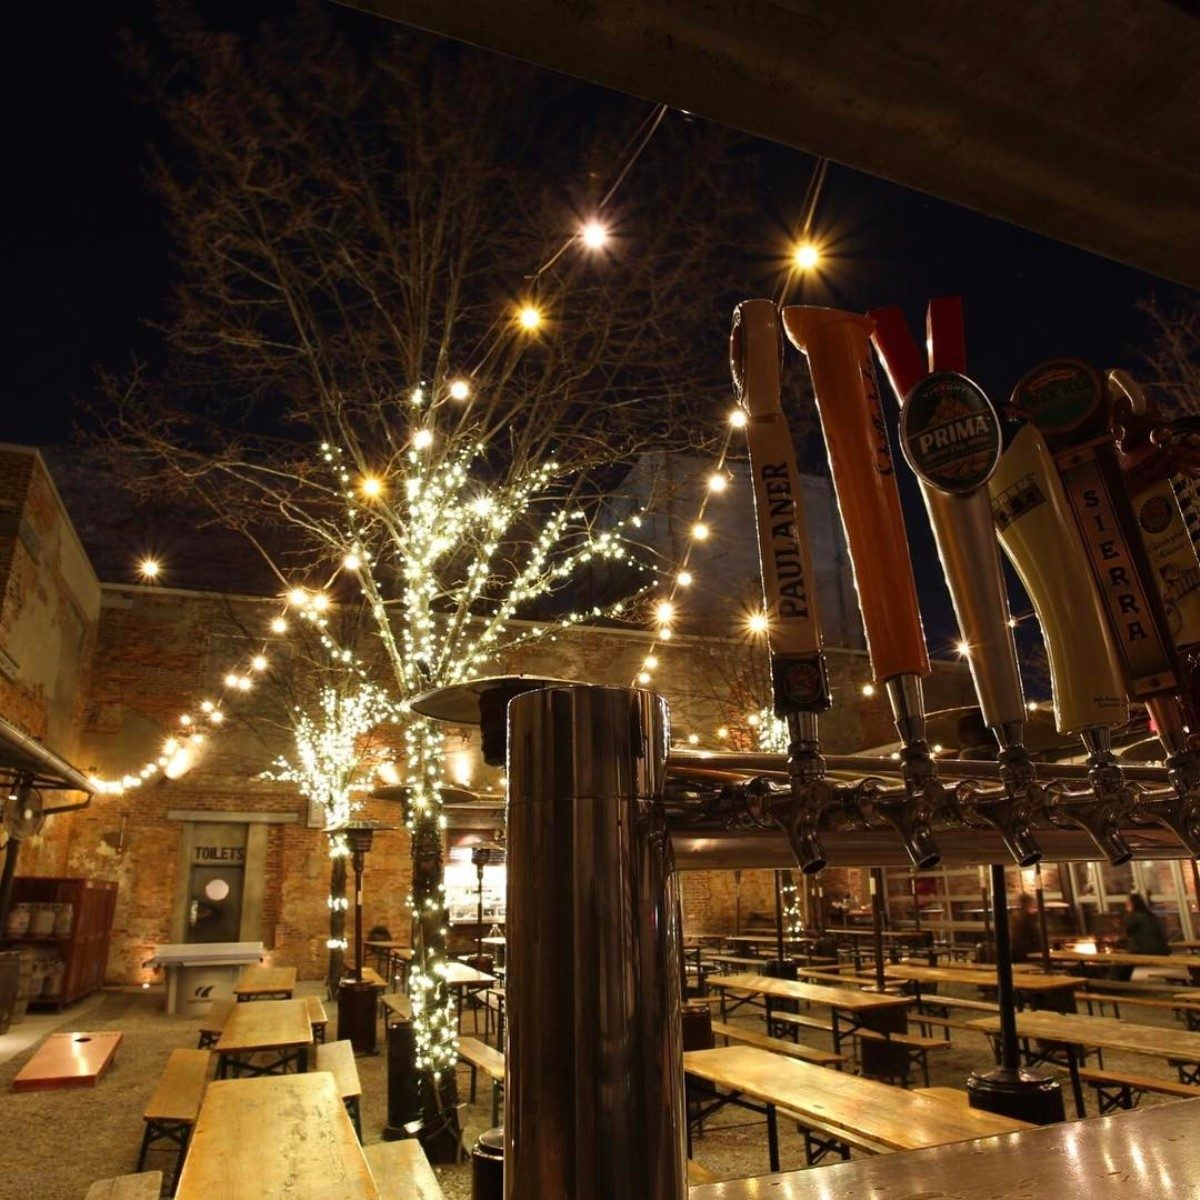 Frankford Hall's beer garden lit up at night